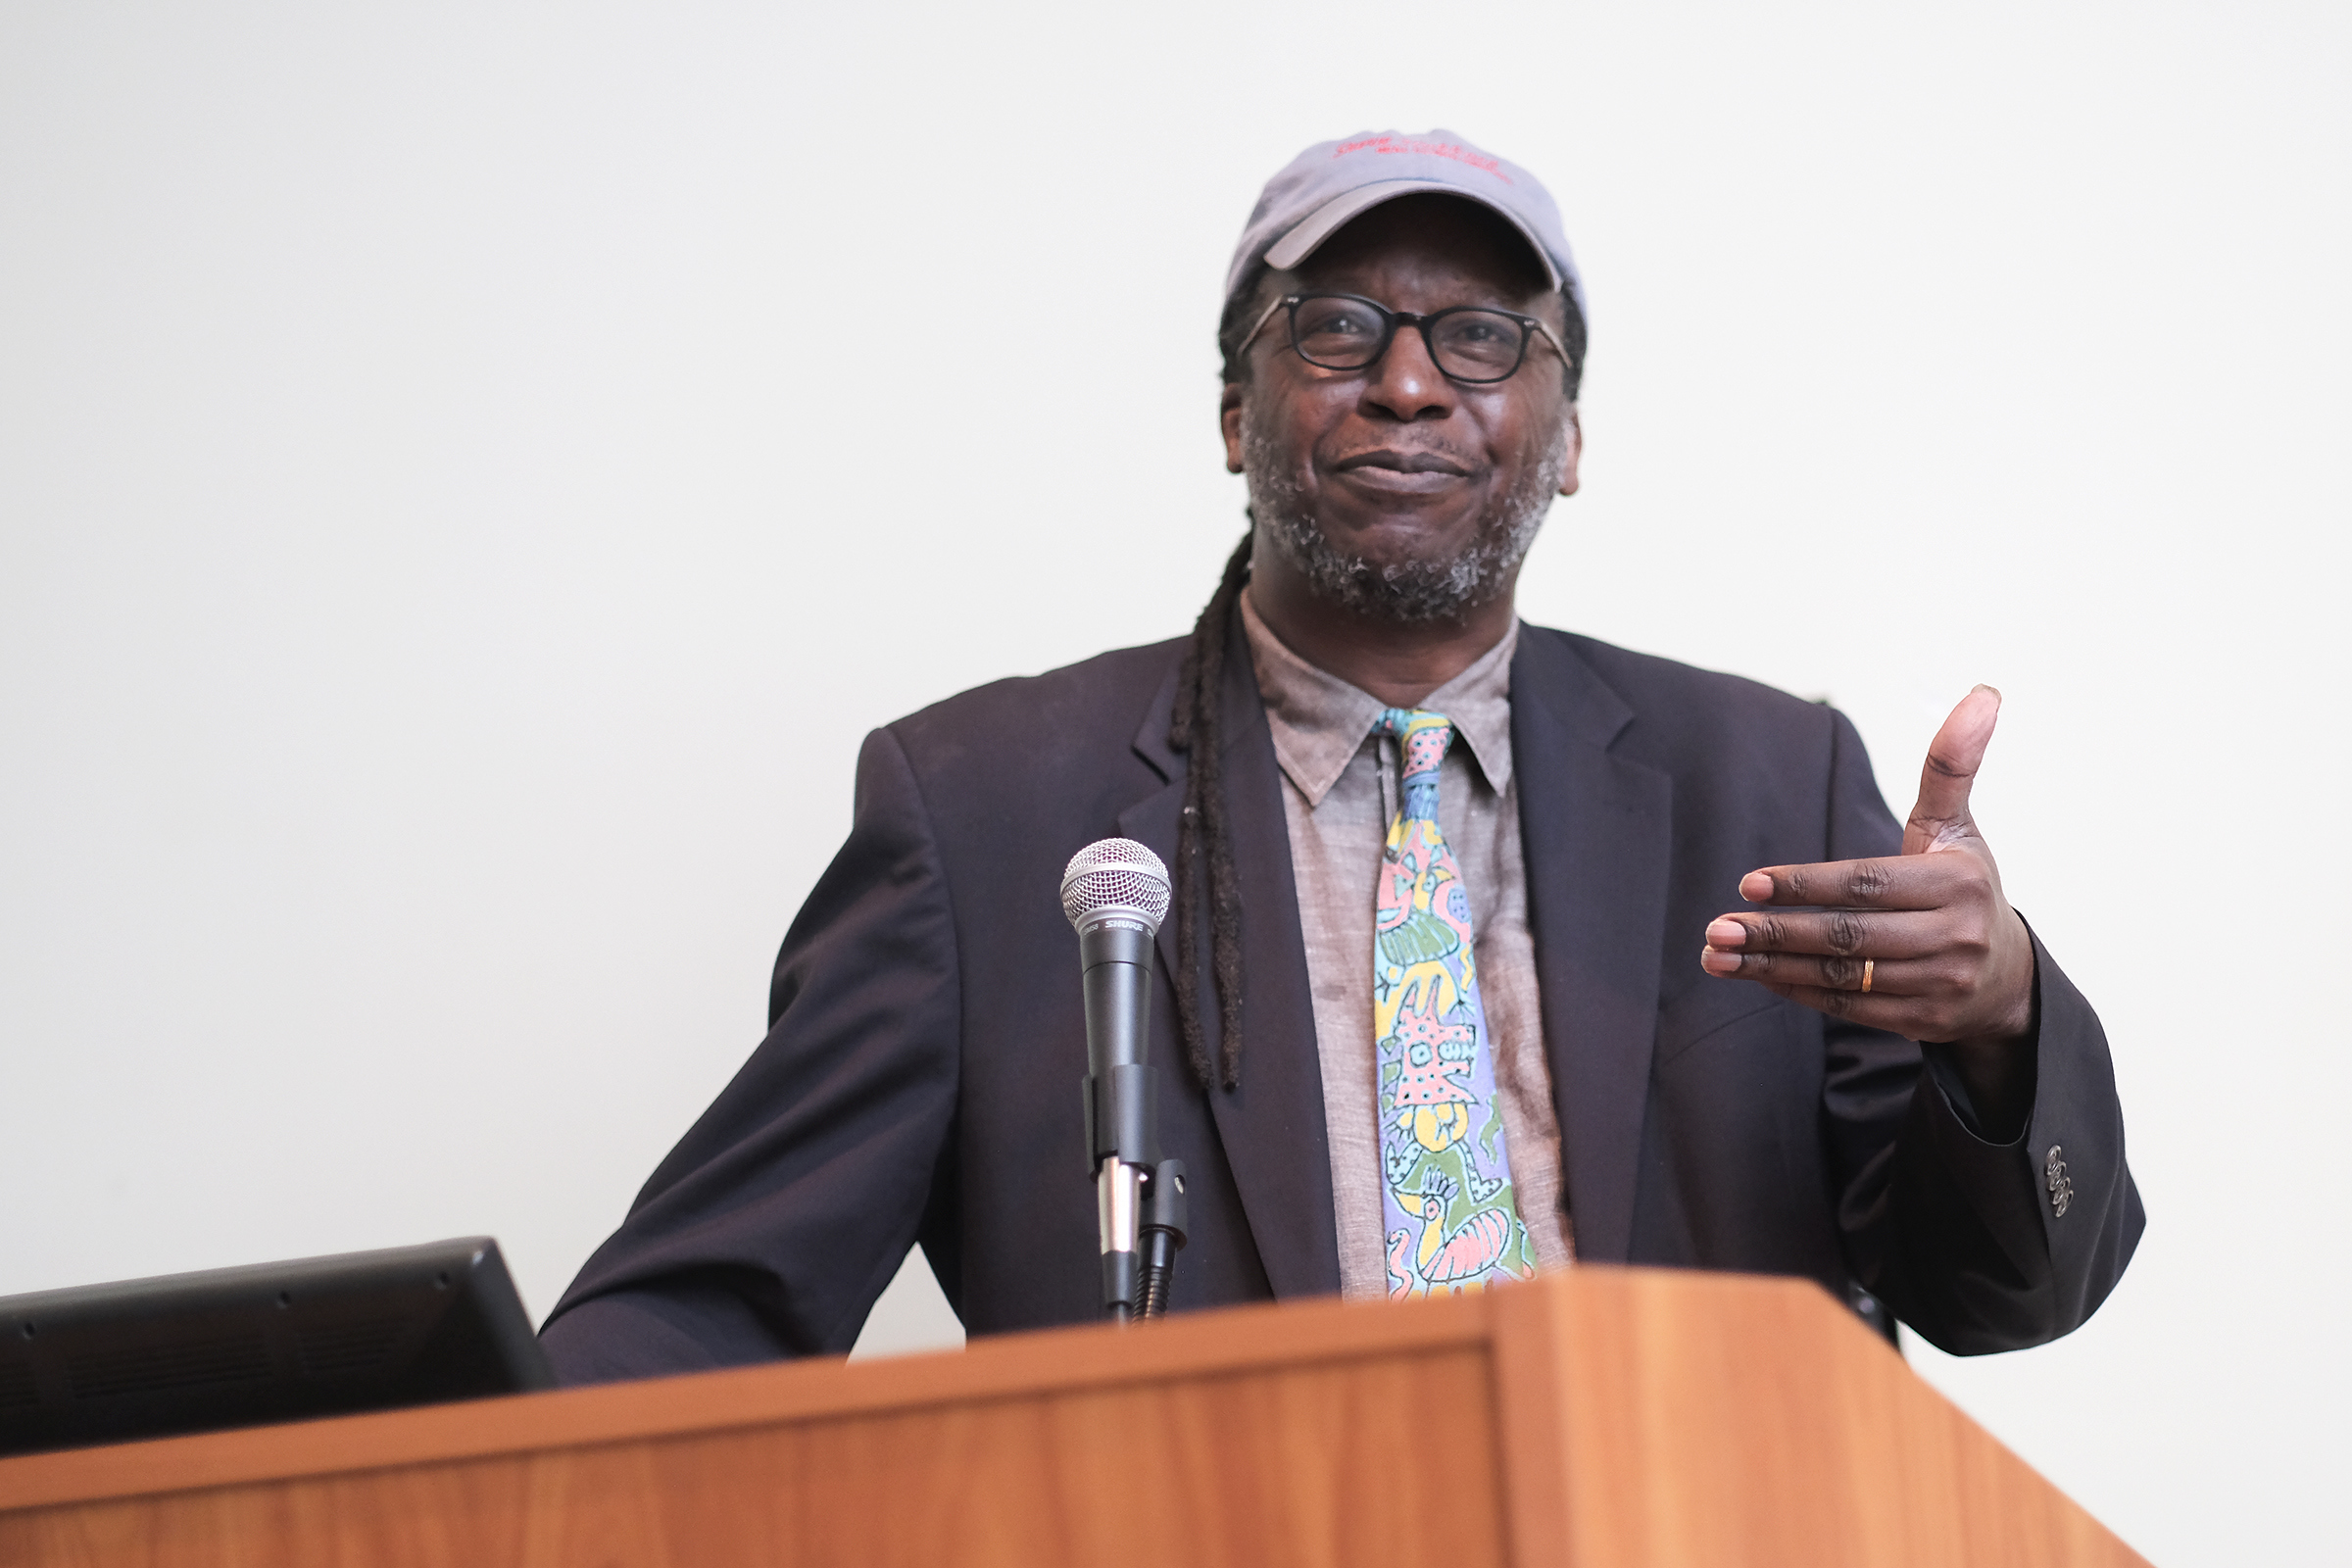 The Margaret Walker Center hosted the 11th annual Creative Arts Festival on the campus of Jackson State University April 12 -13. This year's keynote speaker was Cornelius Eady, accomplished writer and founder of Cave Canem - national organization for African American poetry and poets. (Charles A. Smith/University Communications)